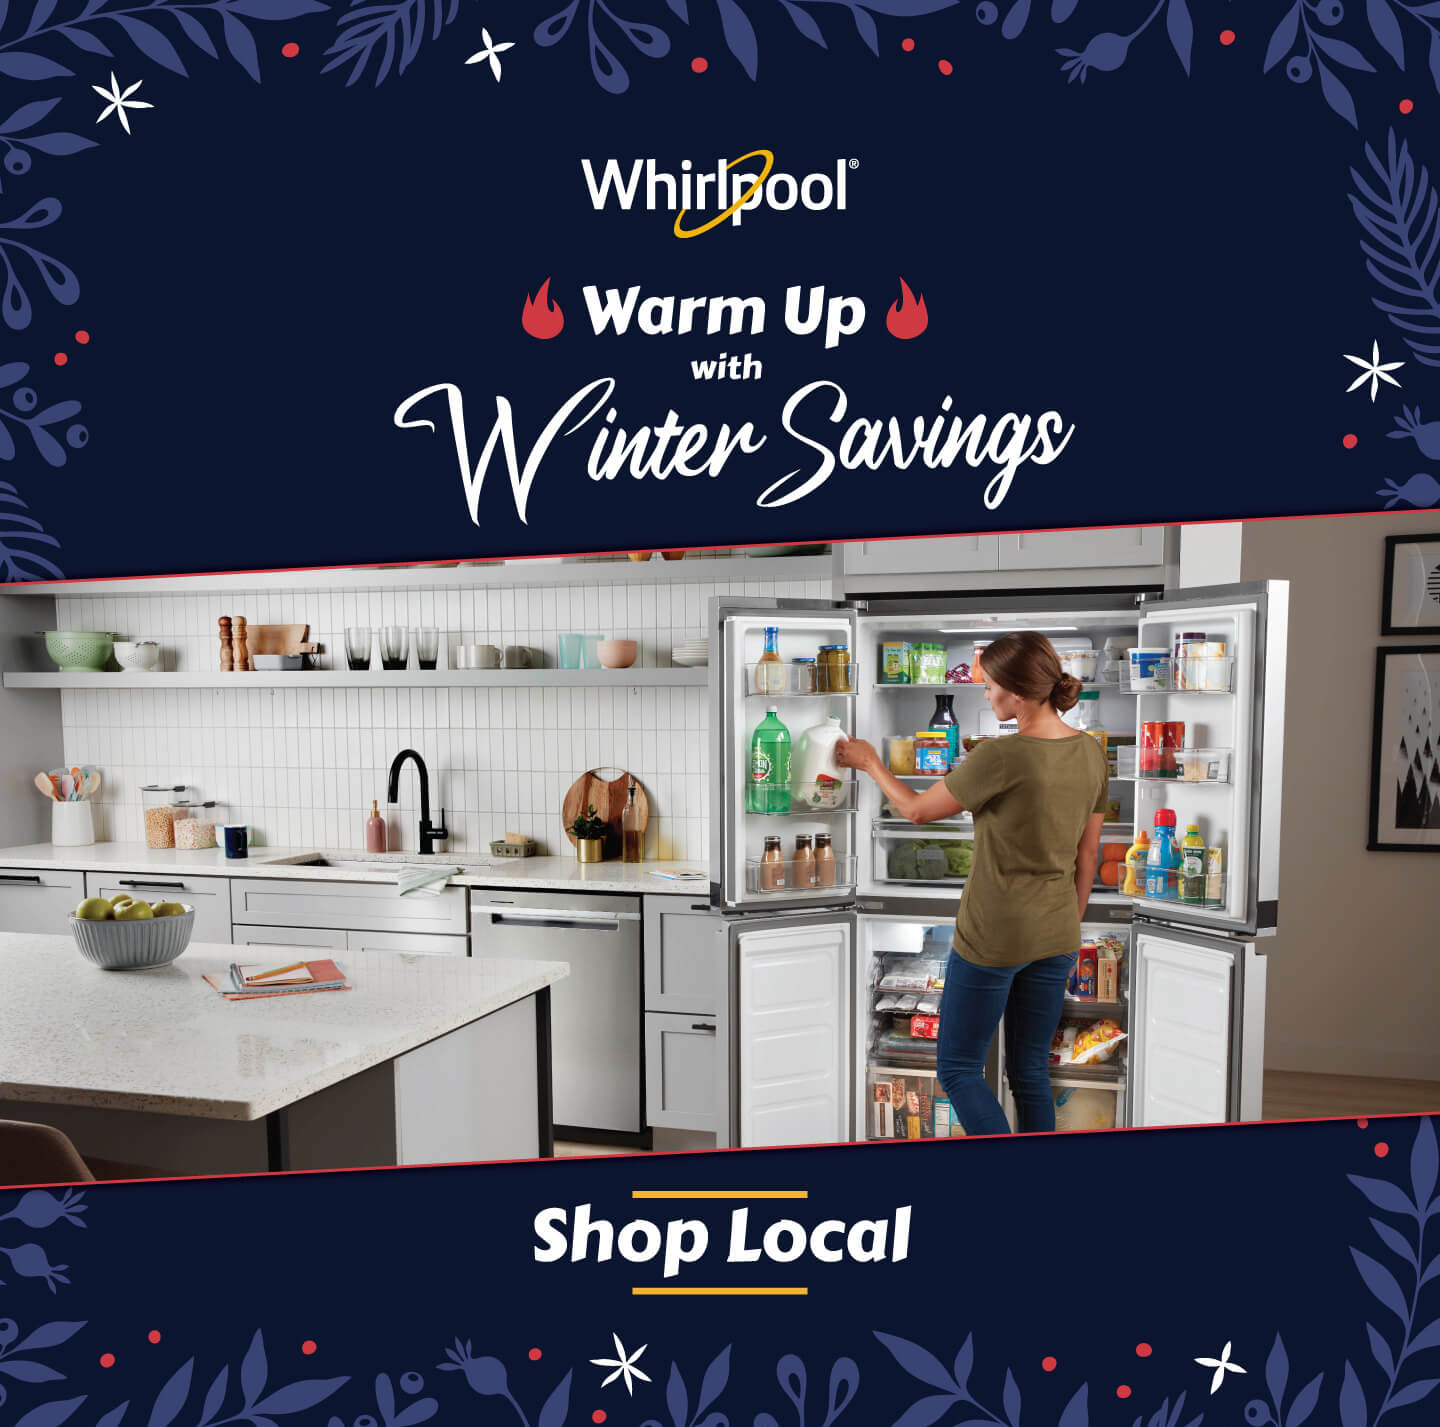 Shop Local and Save on Whirlpool